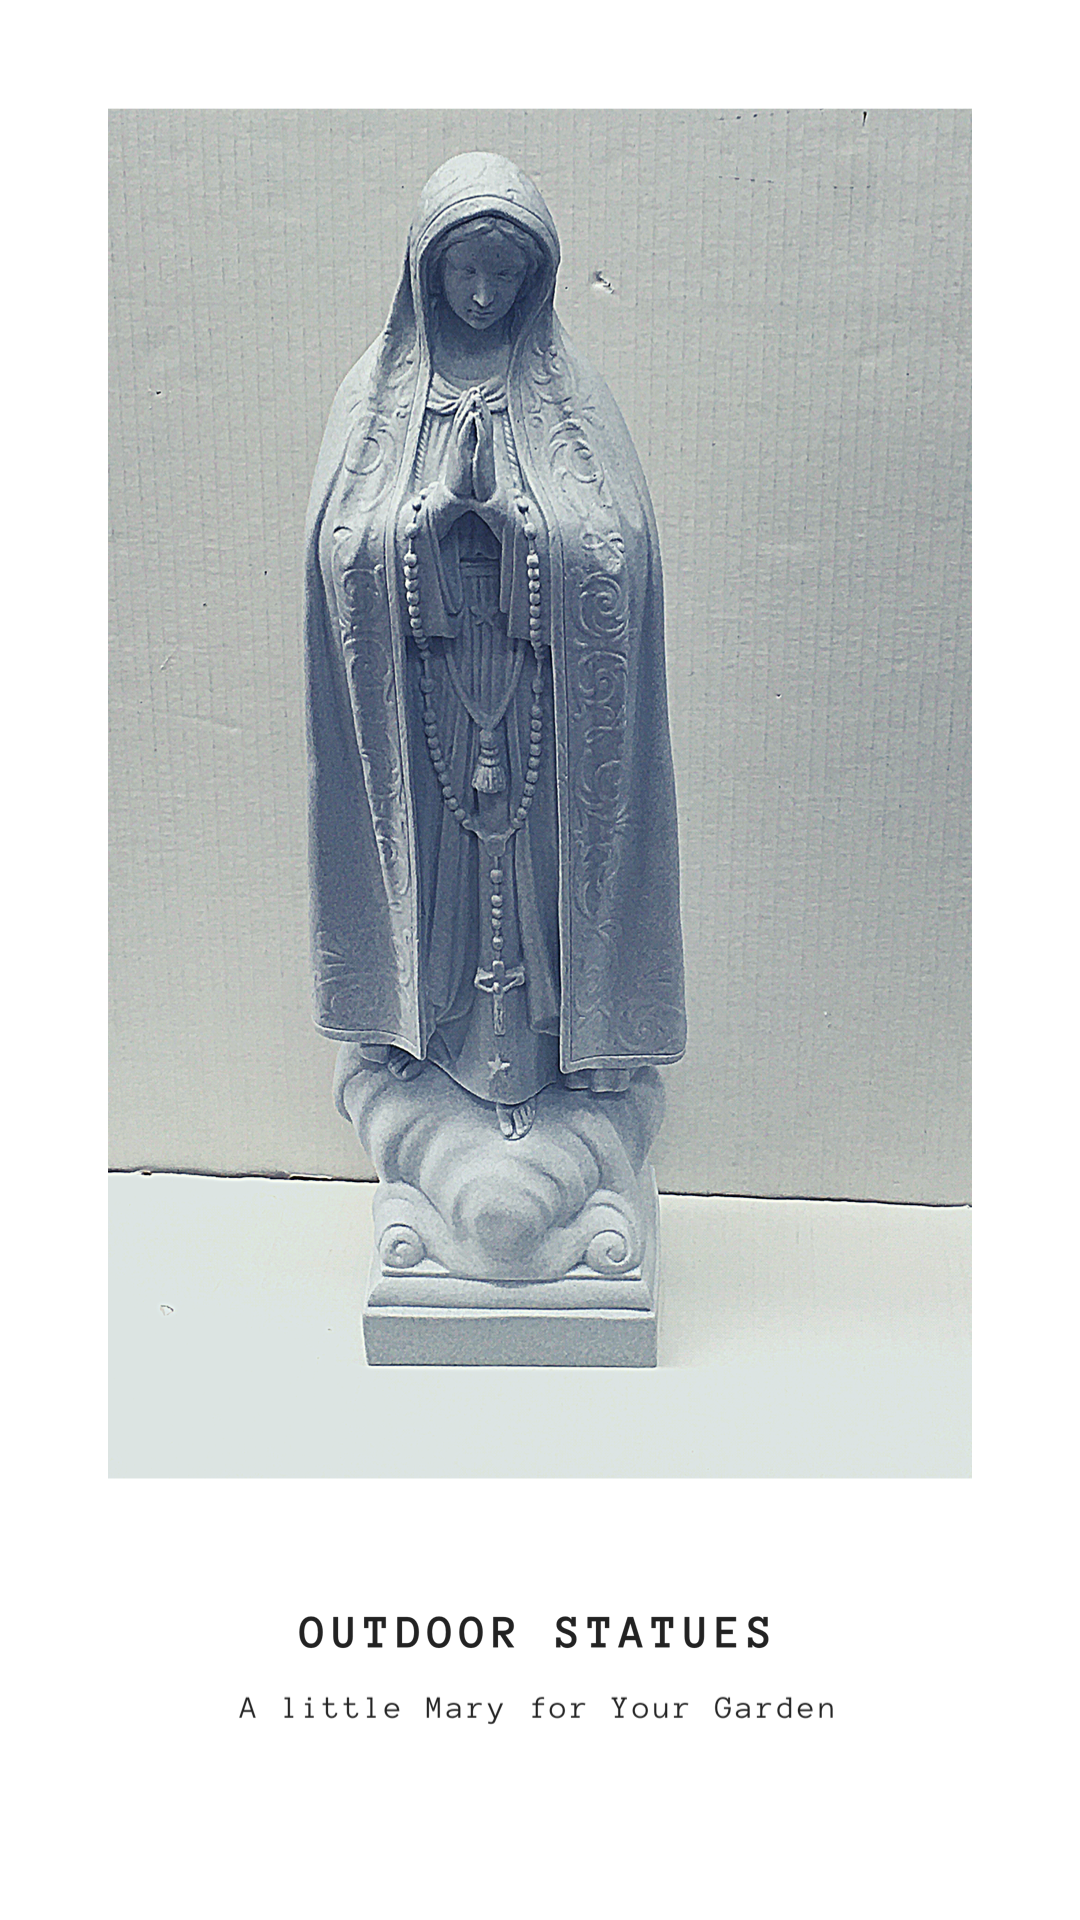 Outdoor Statues: A Little Mary for Your Garden